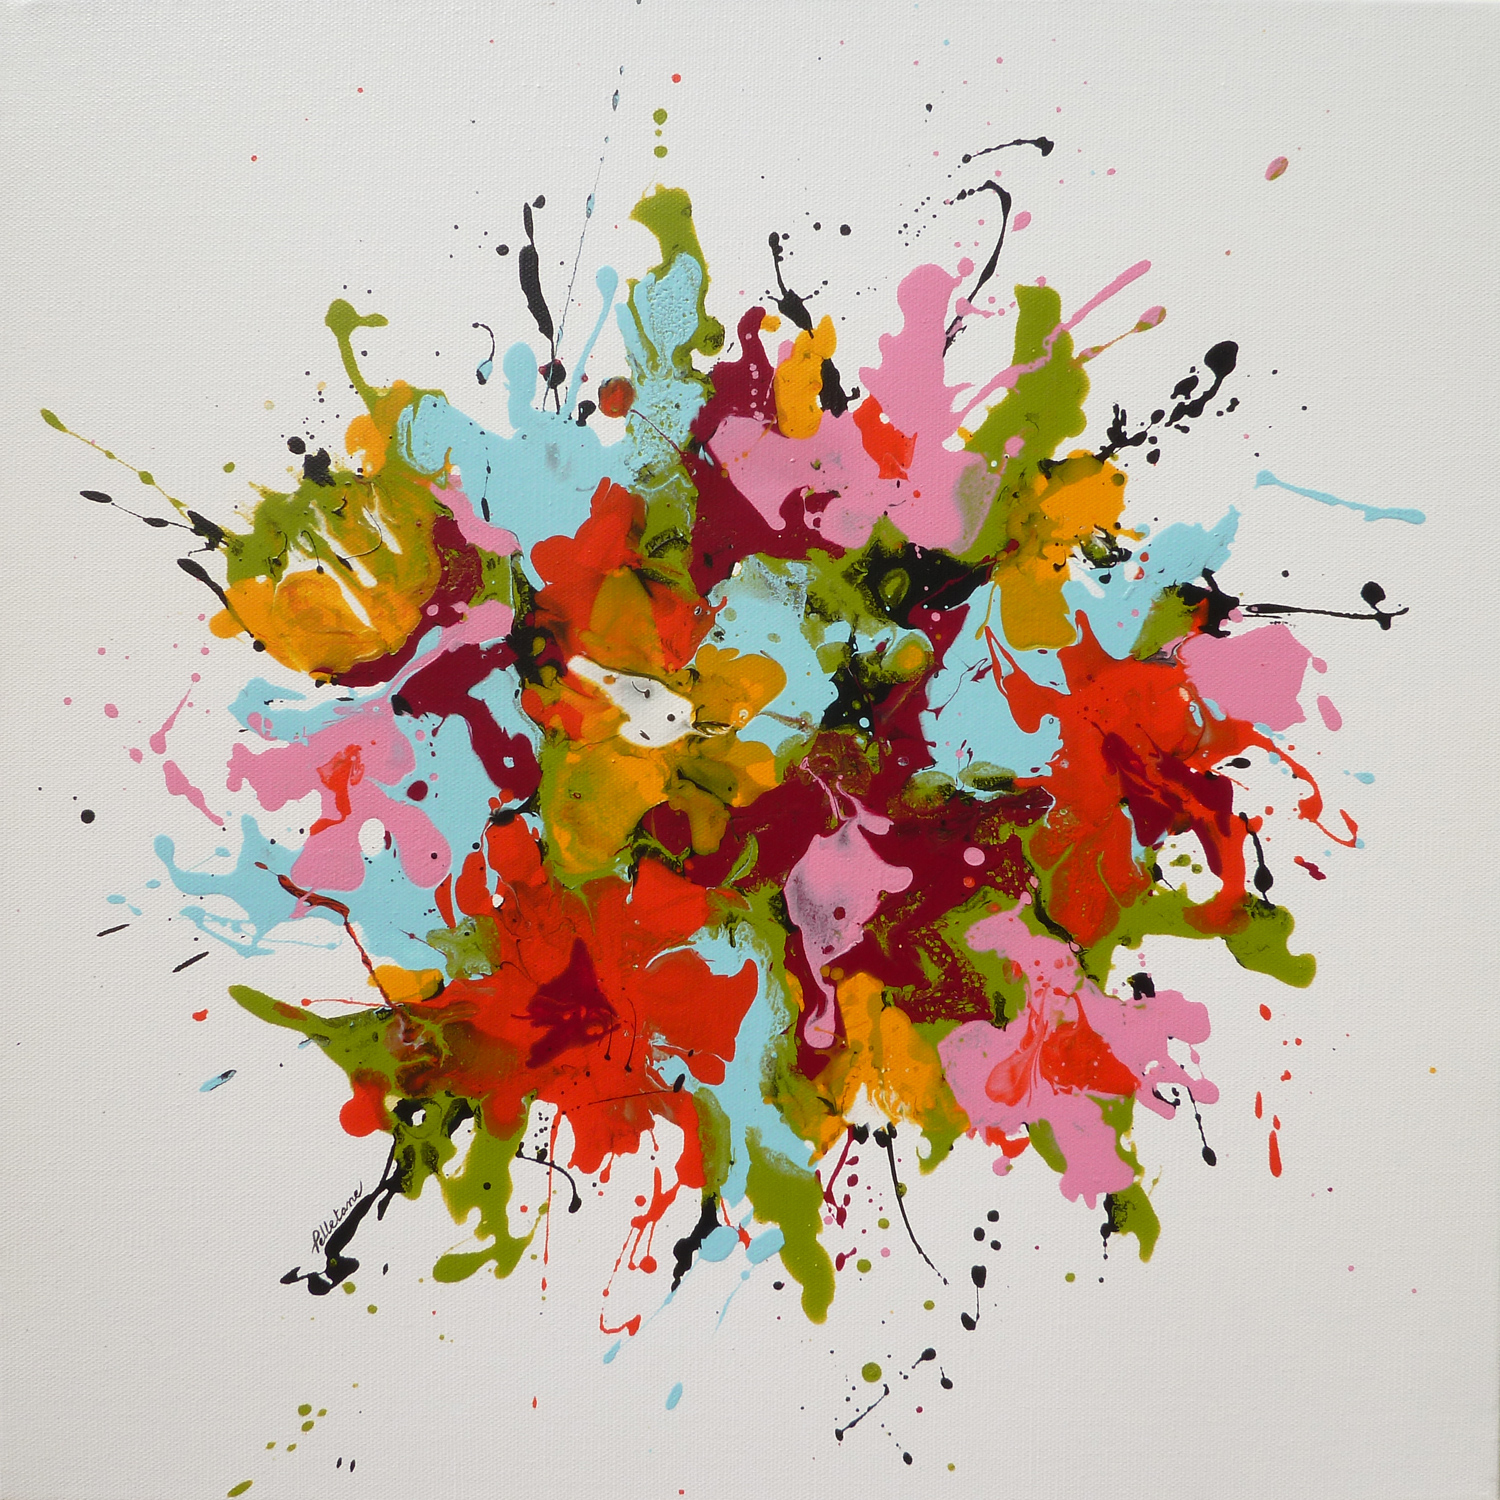 Bloom-(50x50)-Pelletane-2016